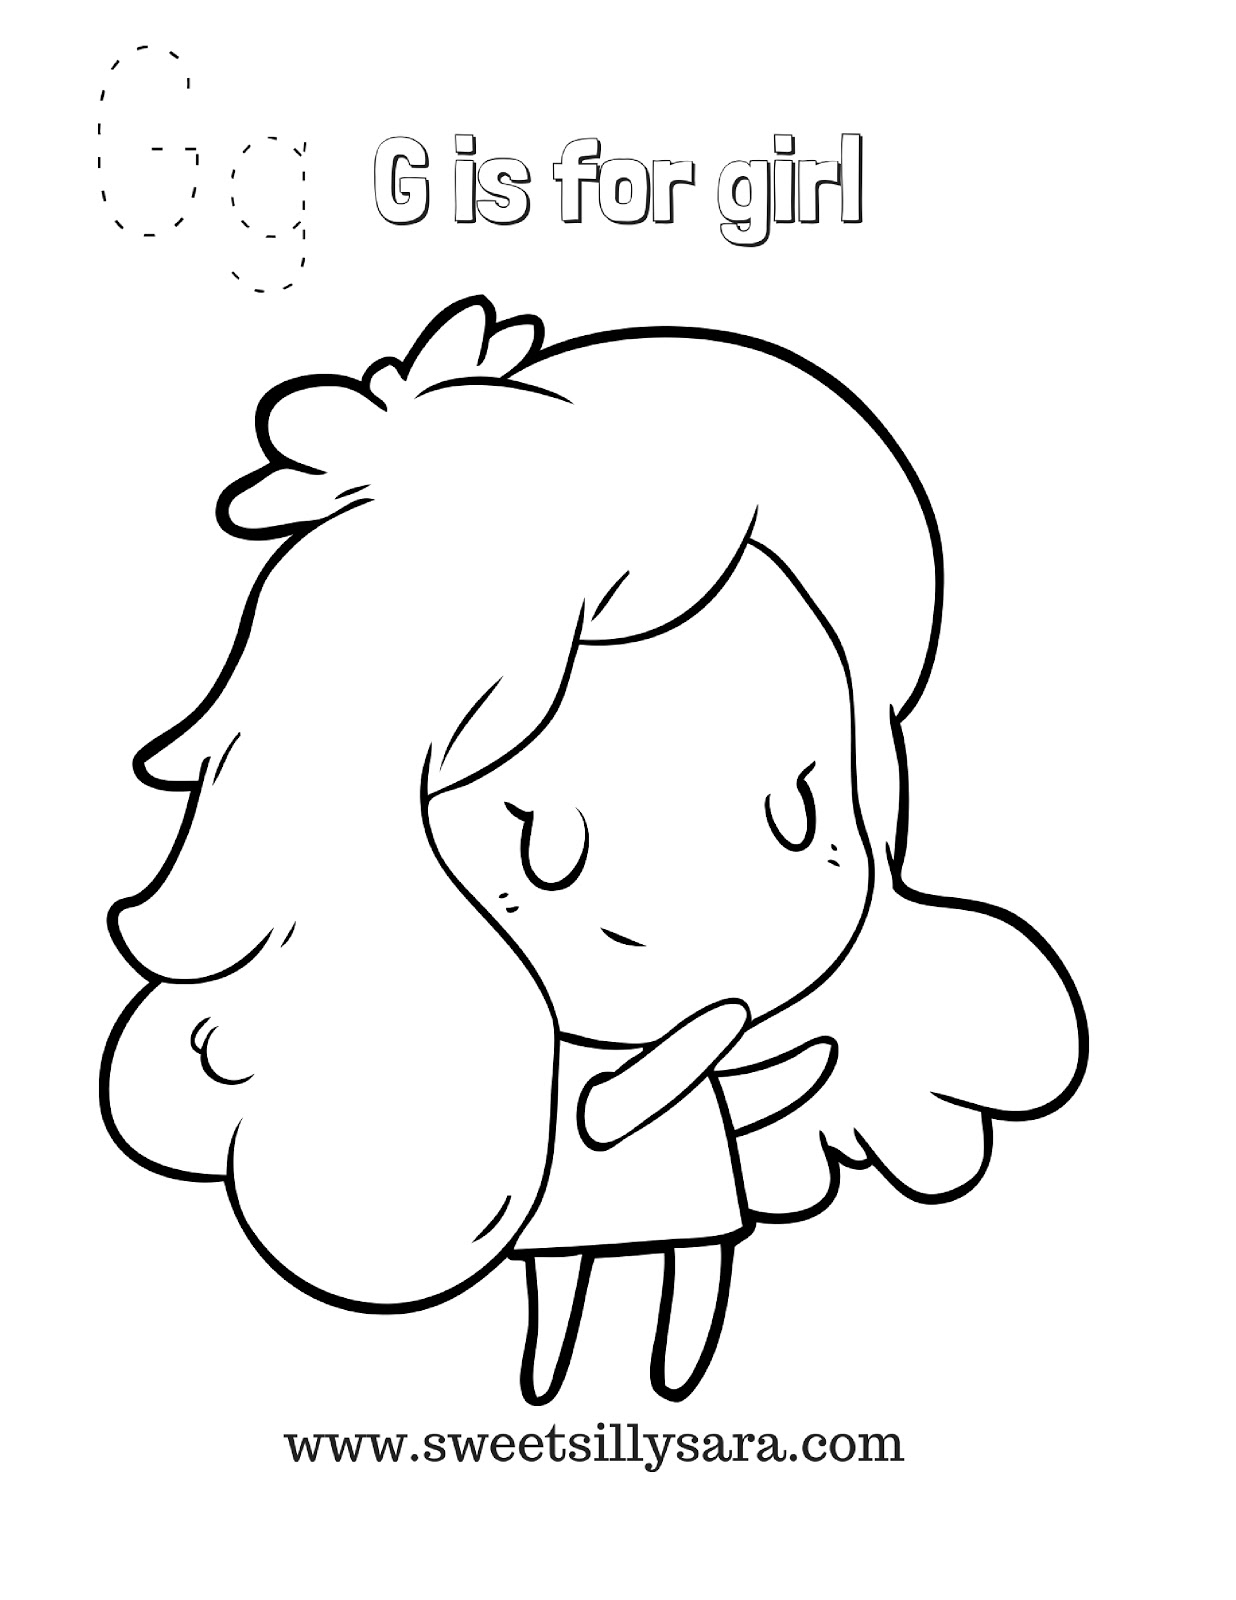 g is for girl coloring page free letter g coloring sheet download free clip art free for girl page is coloring g